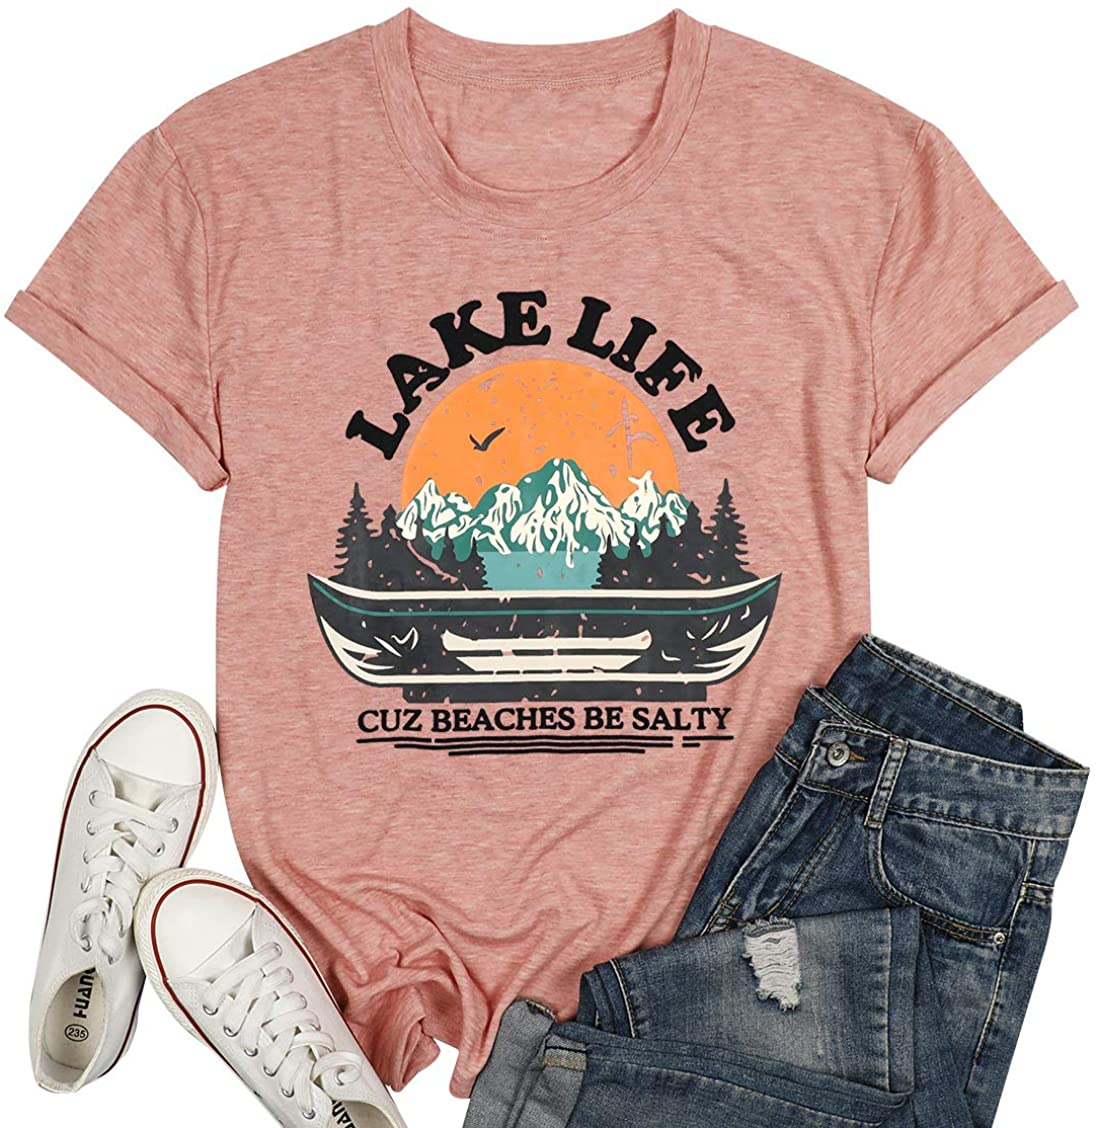 Lake Life Shirt for Women Letter Print Funny Graphic T-Shirt Short Sleeve Round Neck Summer Casual Beaches Tee Tops